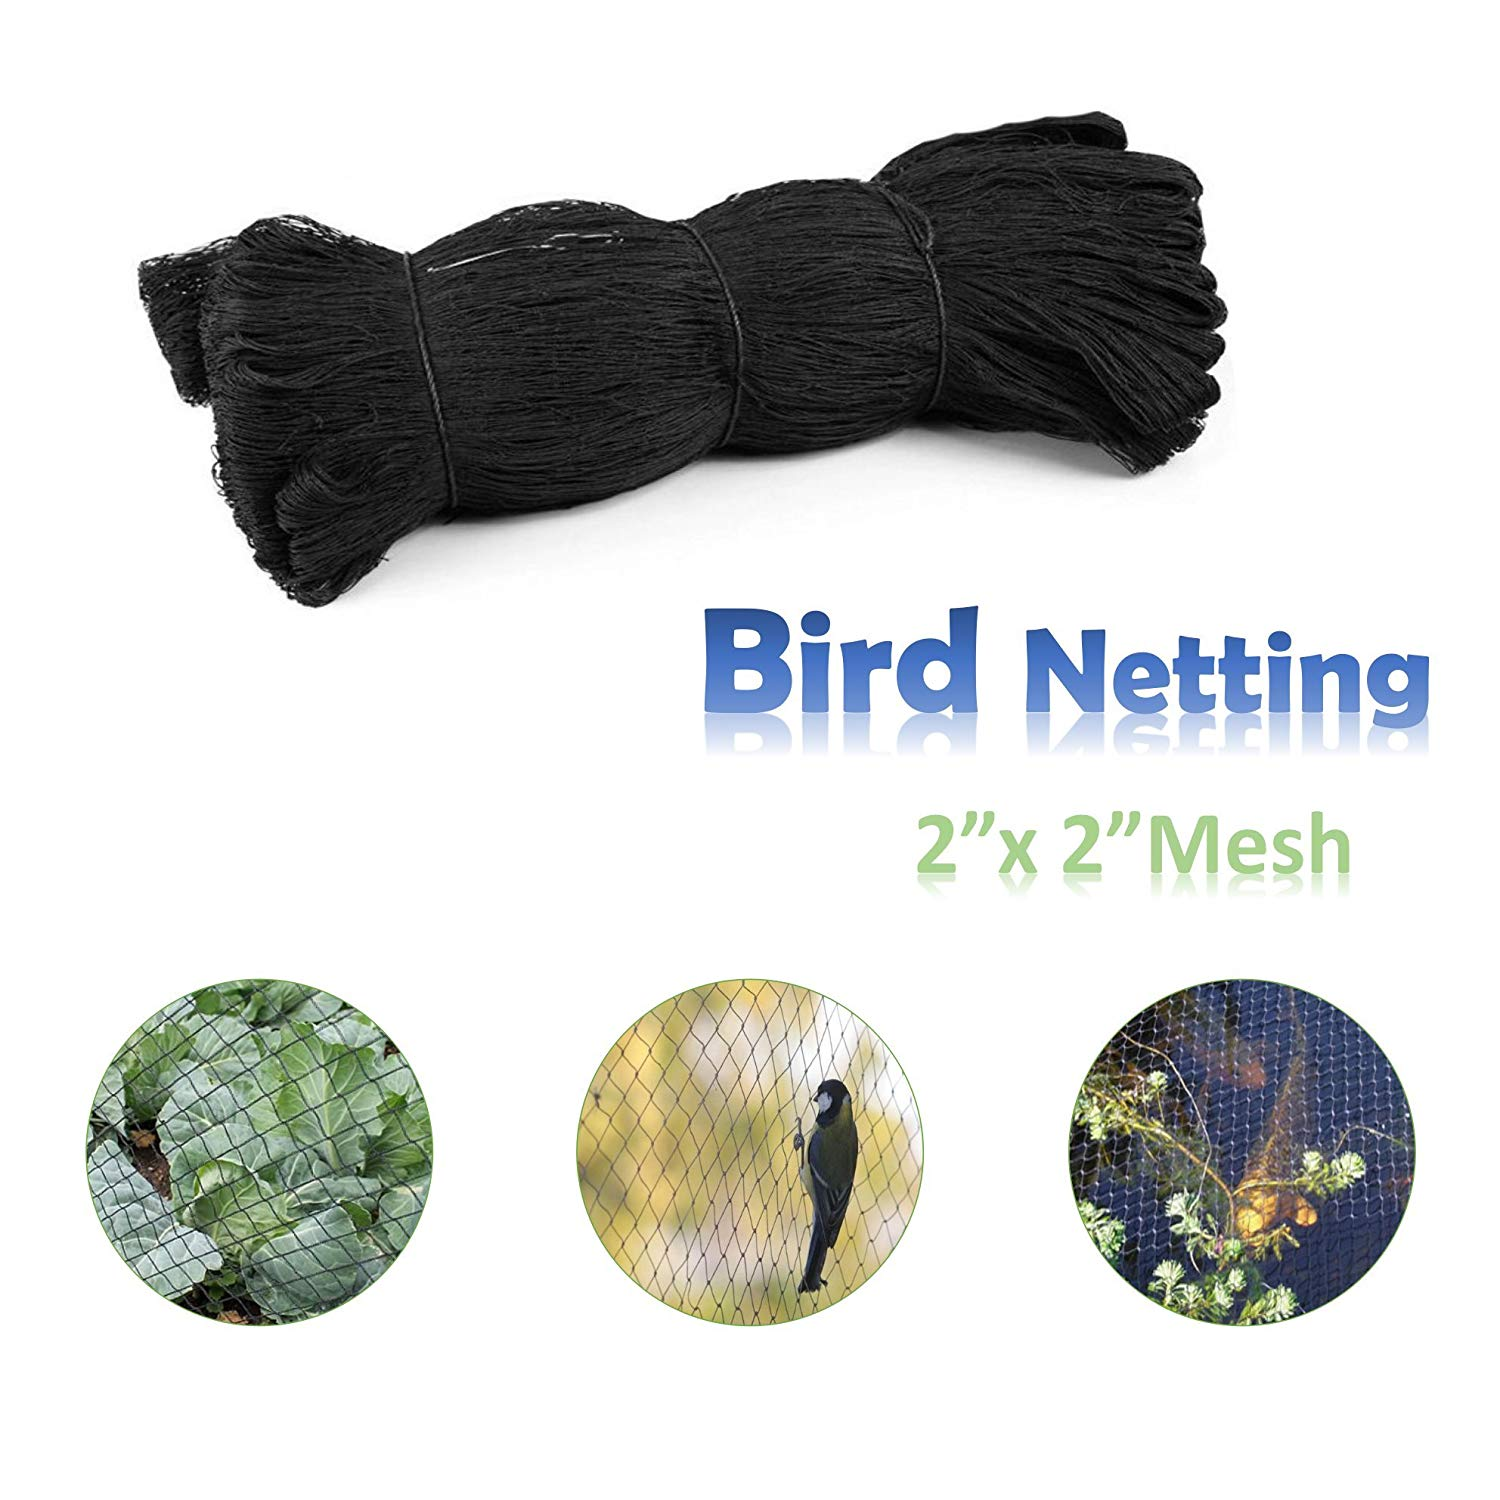 Cheap Fruit Tree Netting Lowes Find Fruit Tree Netting Lowes